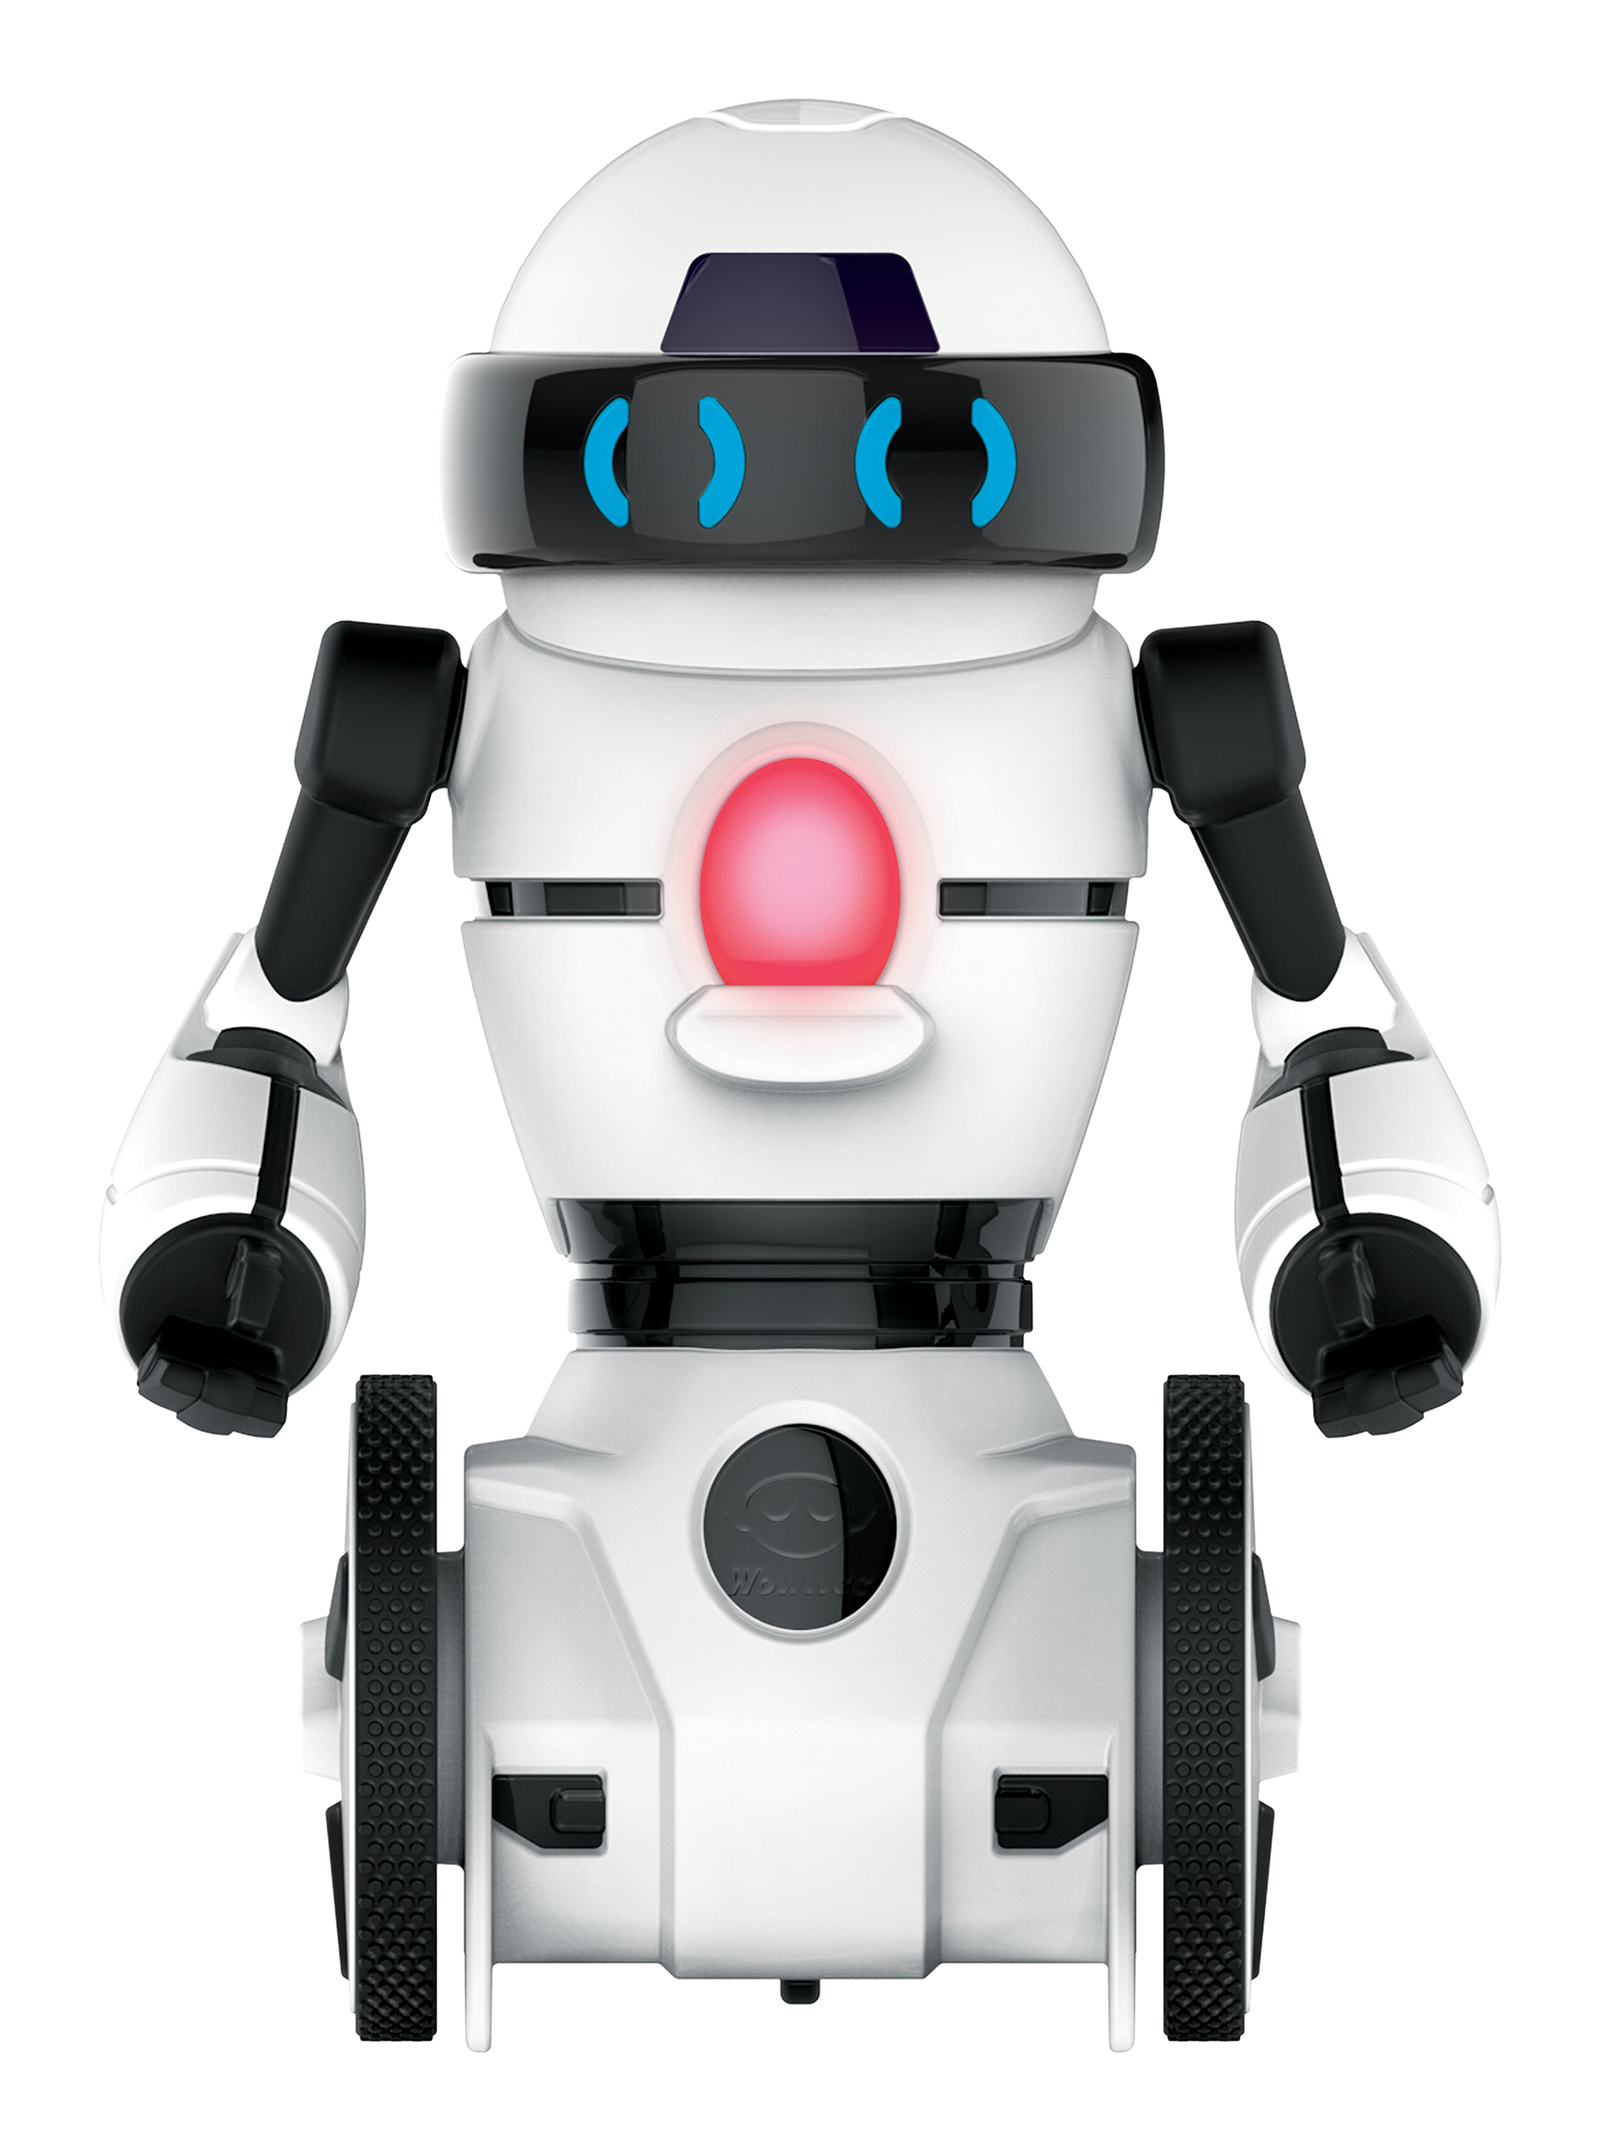 Wowwee Mini Remote Control Mip Robots For Kids Wow Wee Mini